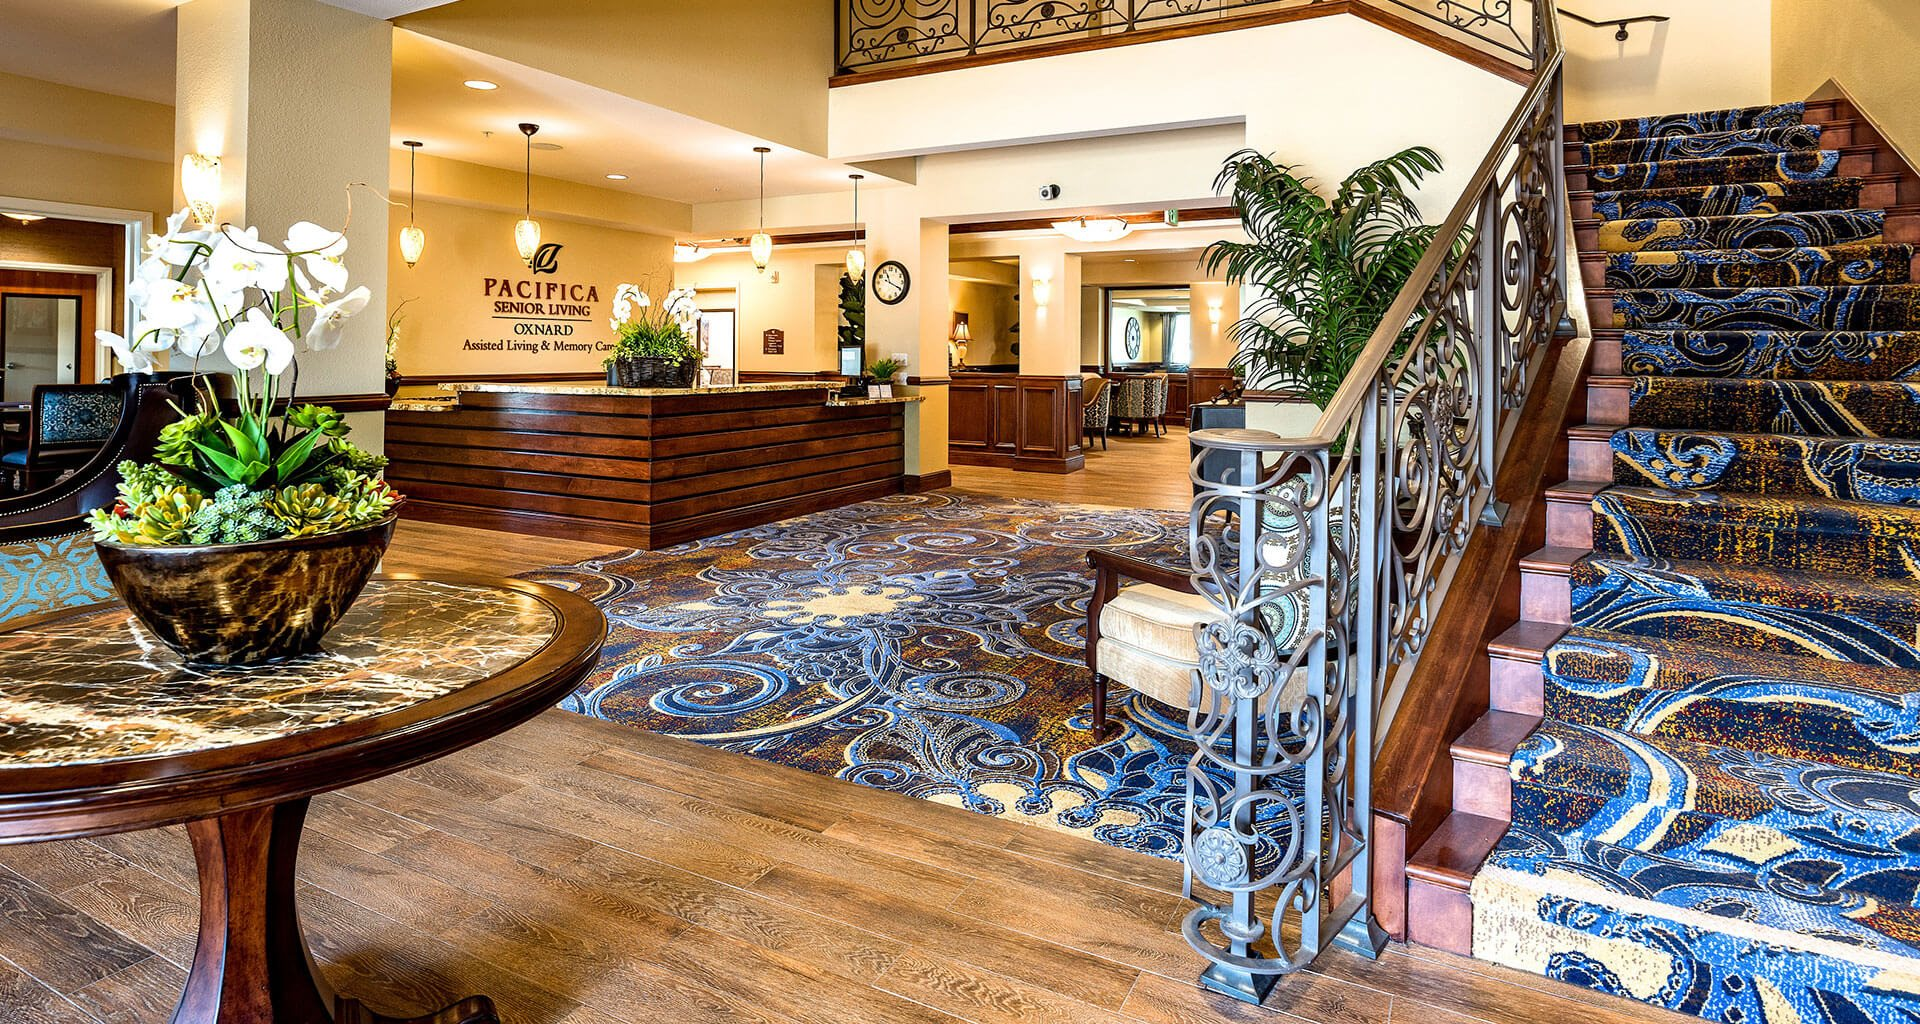 Decorated Reception And Lobby Area at Pacifica Senior Living Oxnard, Oxnard, 93036